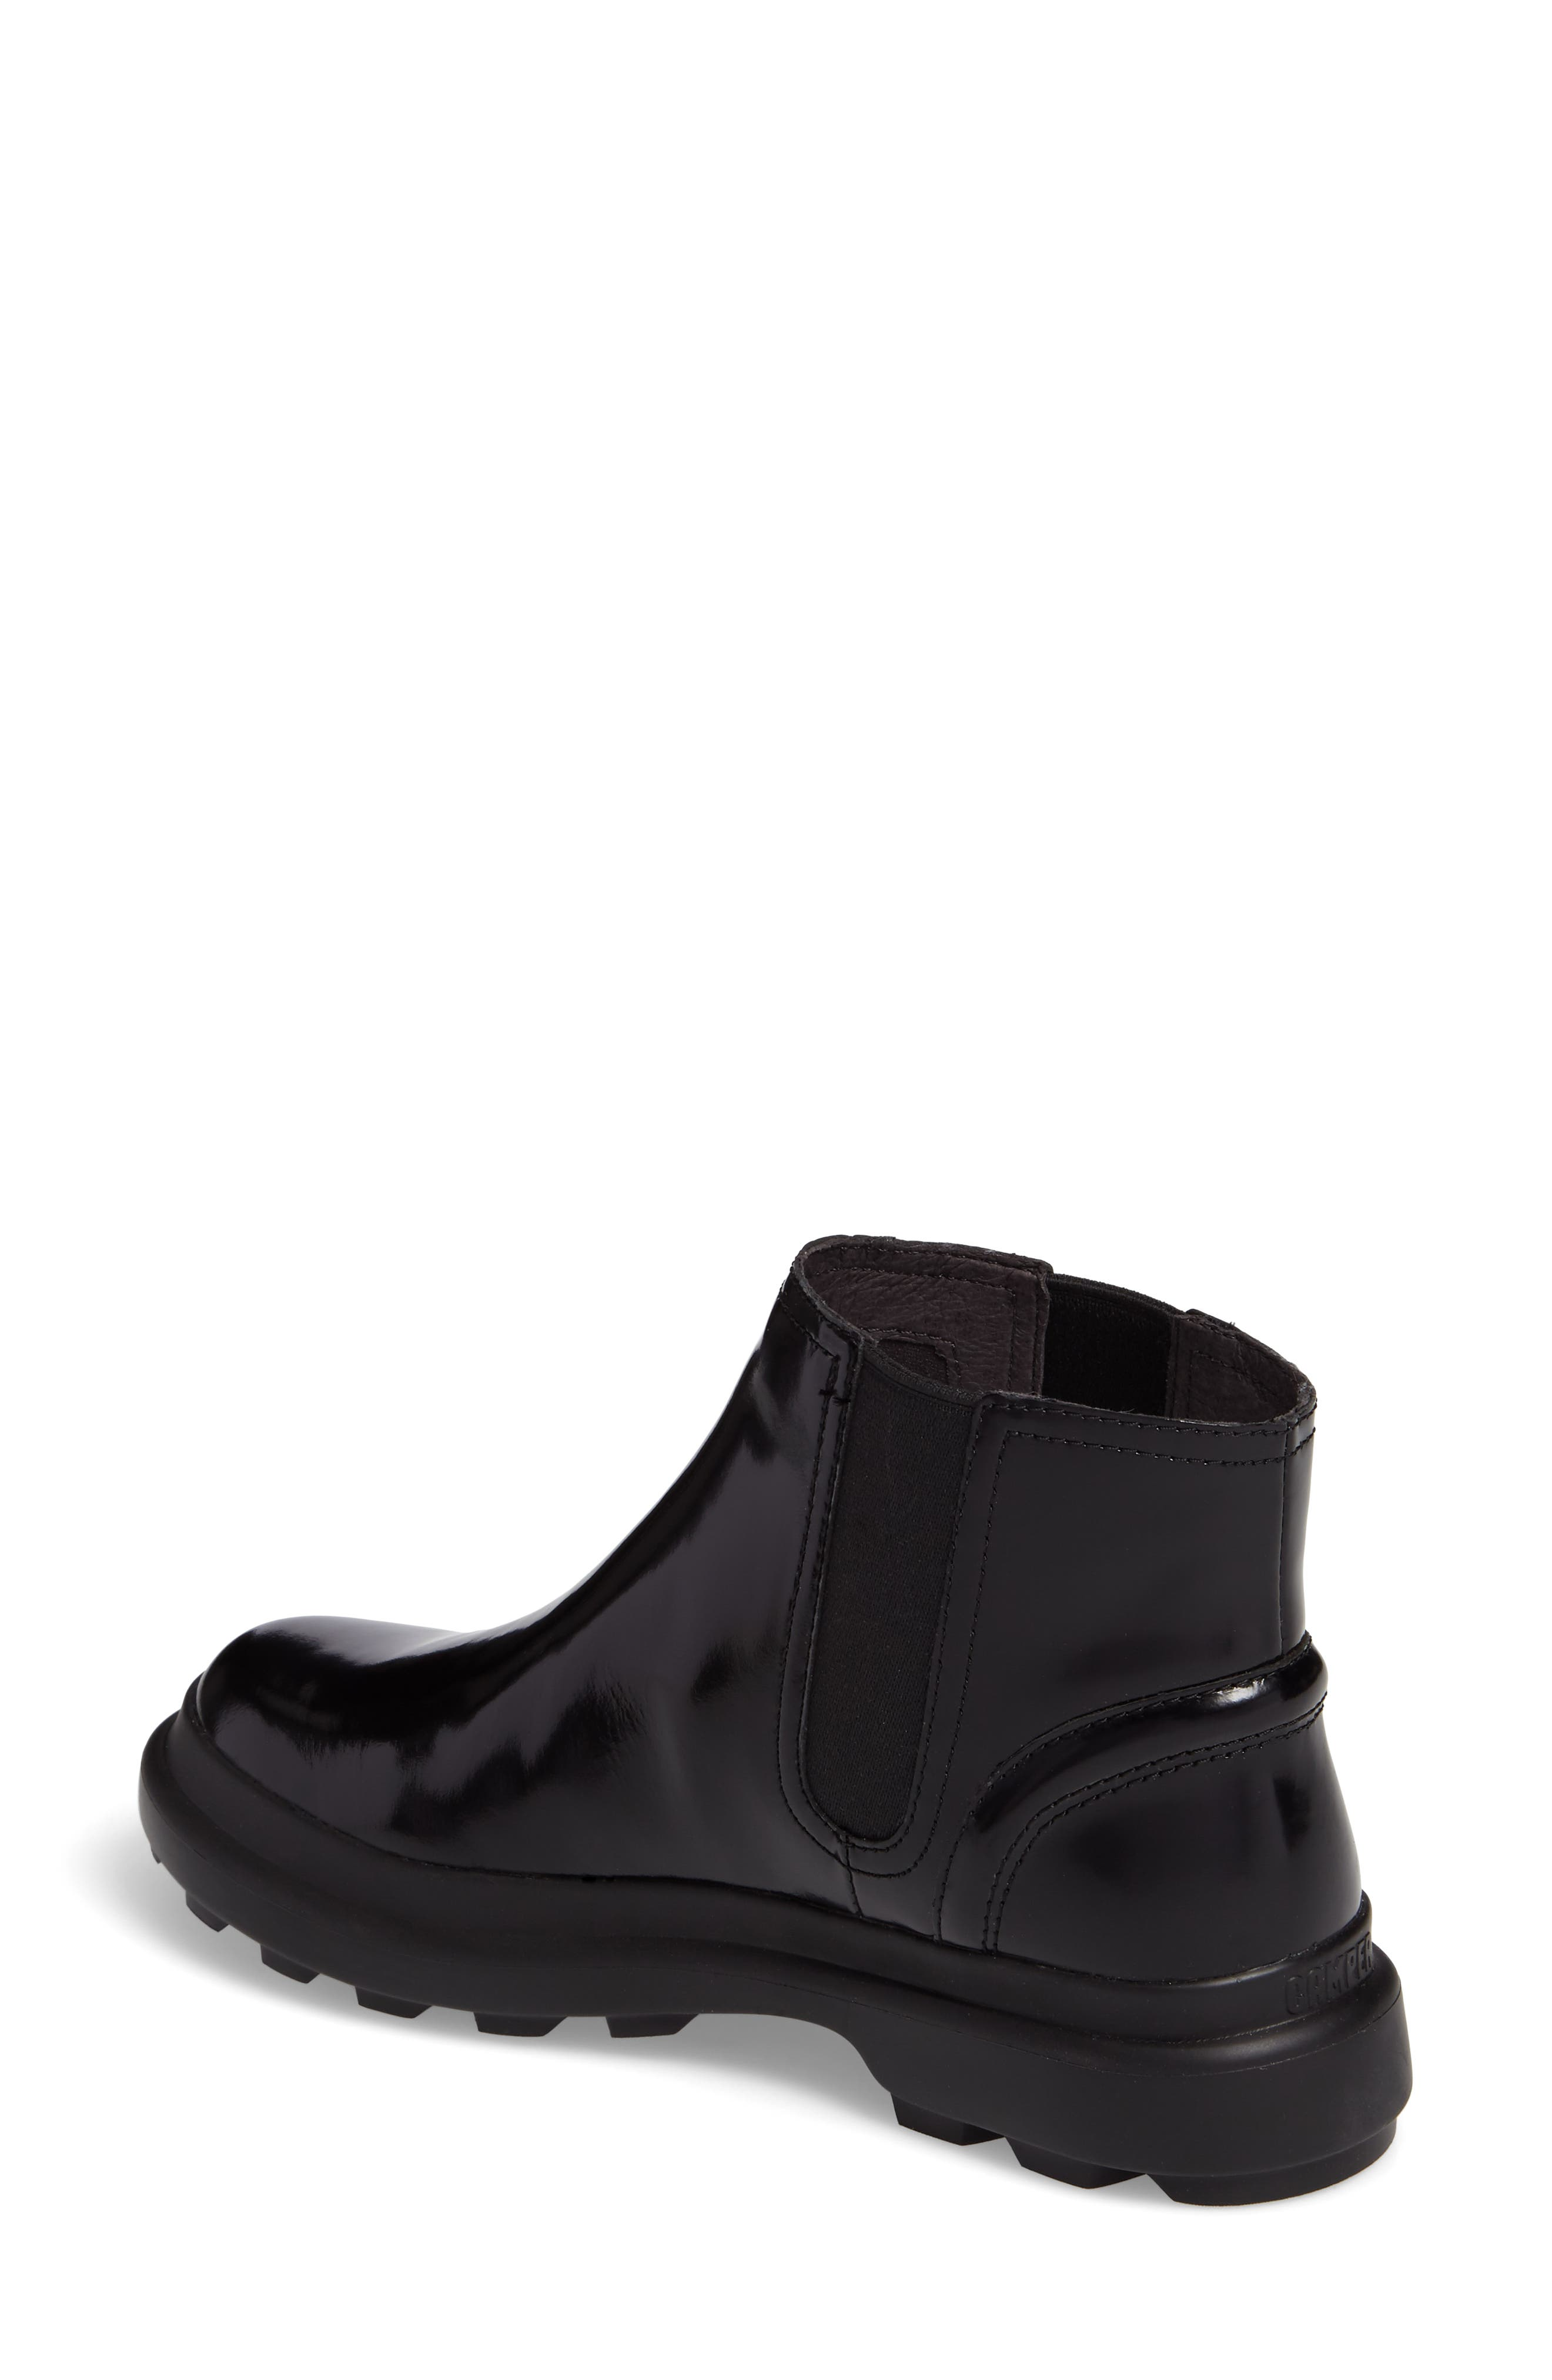 Alternate Image 2  - Camper Turtle Lugged Chelsea Boot (Women)